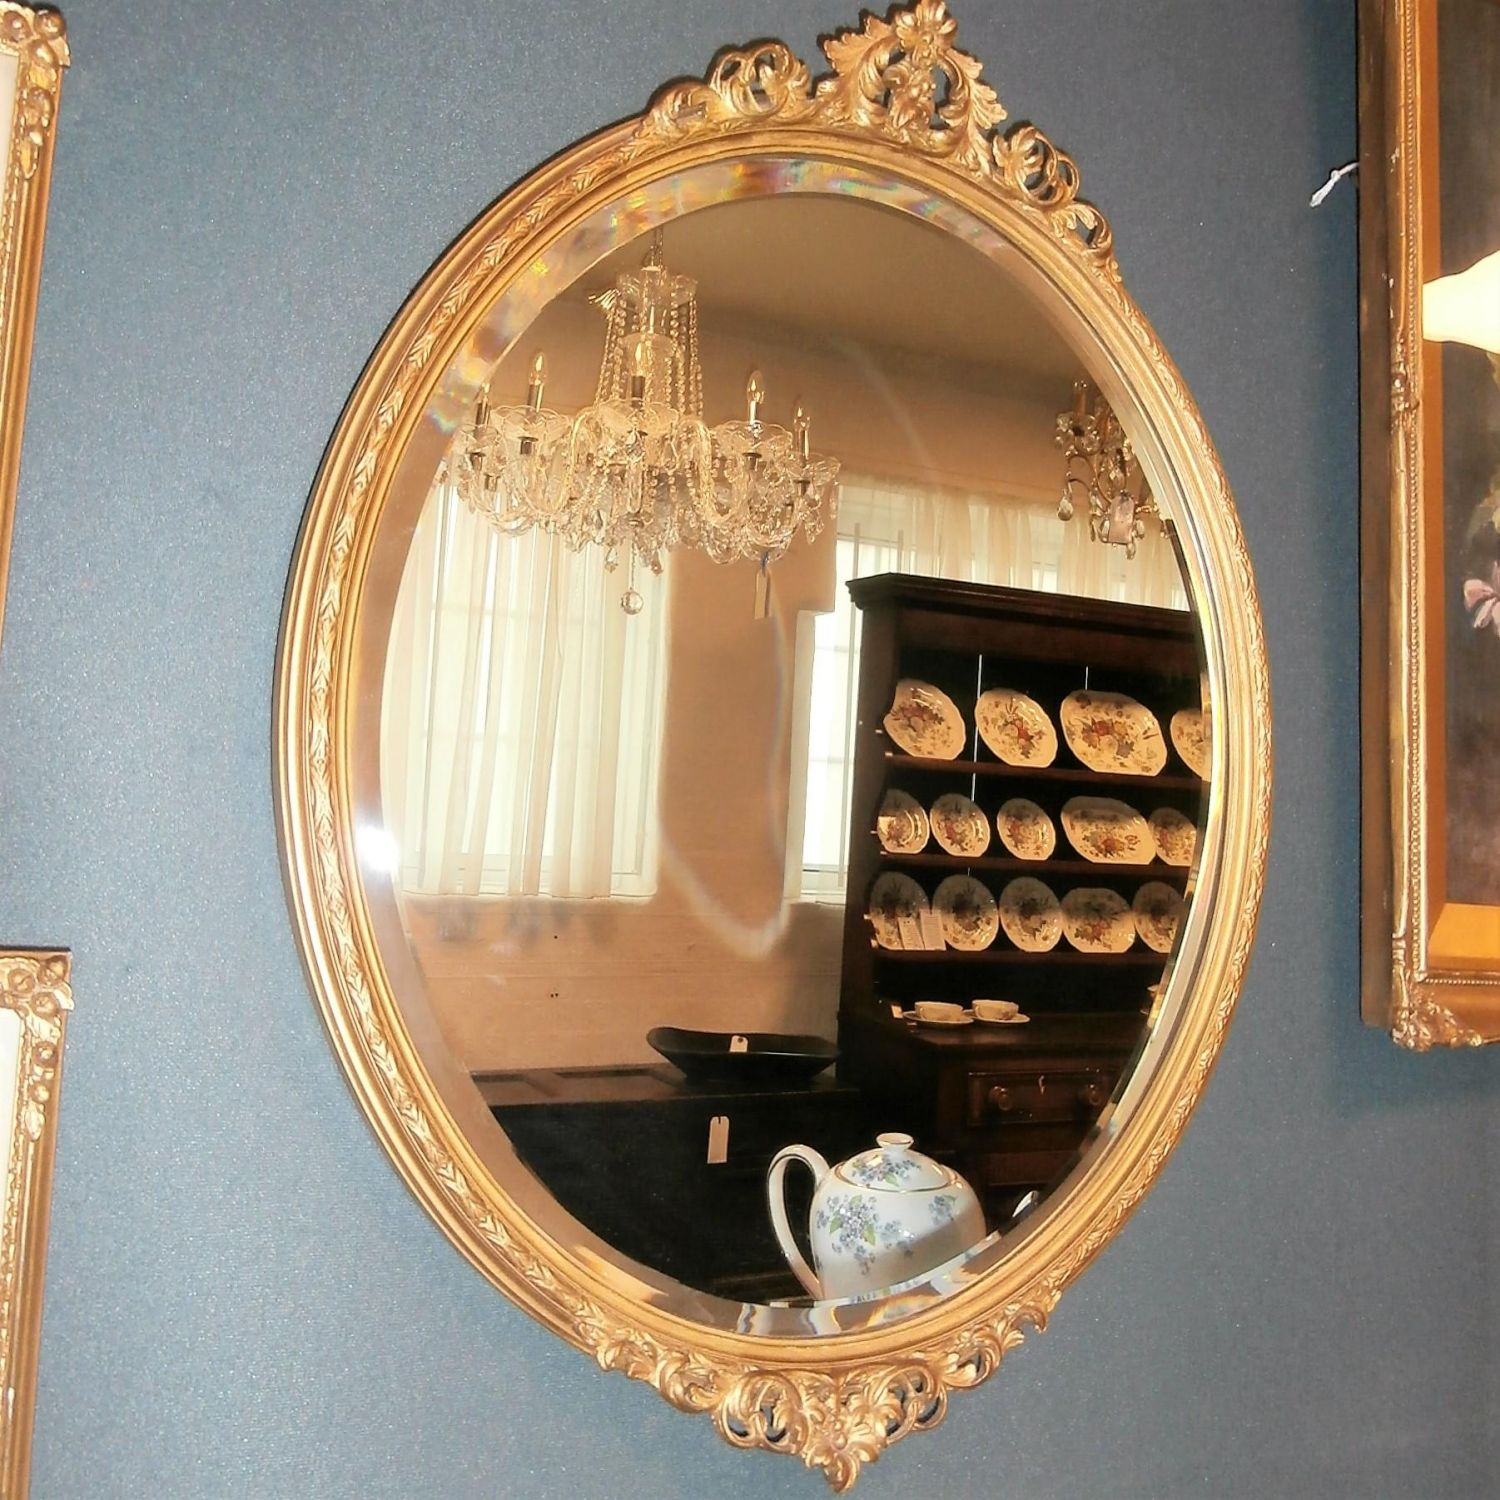 Oval Bevelled Wall Mirror in Decorative Gilt Wooden Frame ...